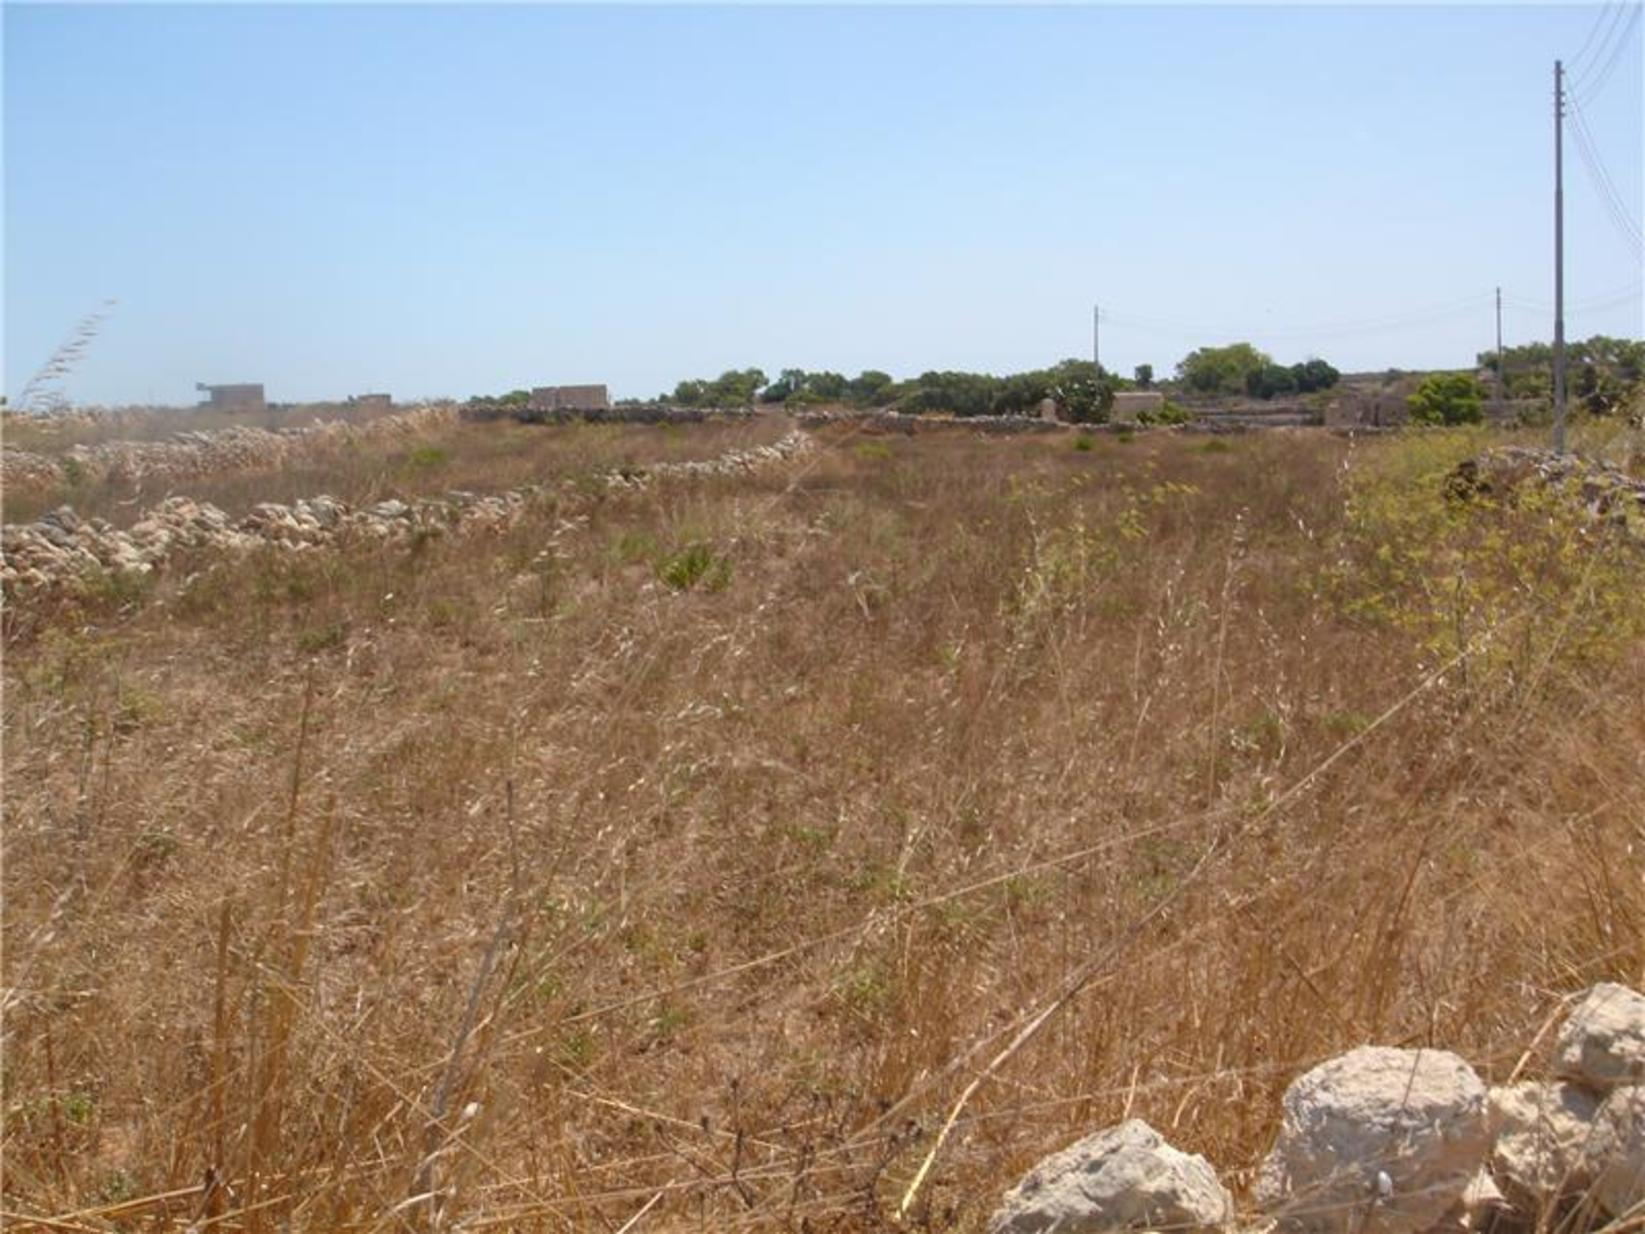 0 bed Plot Residential For Sale in Siggiewi, Siggiewi - thumb 3